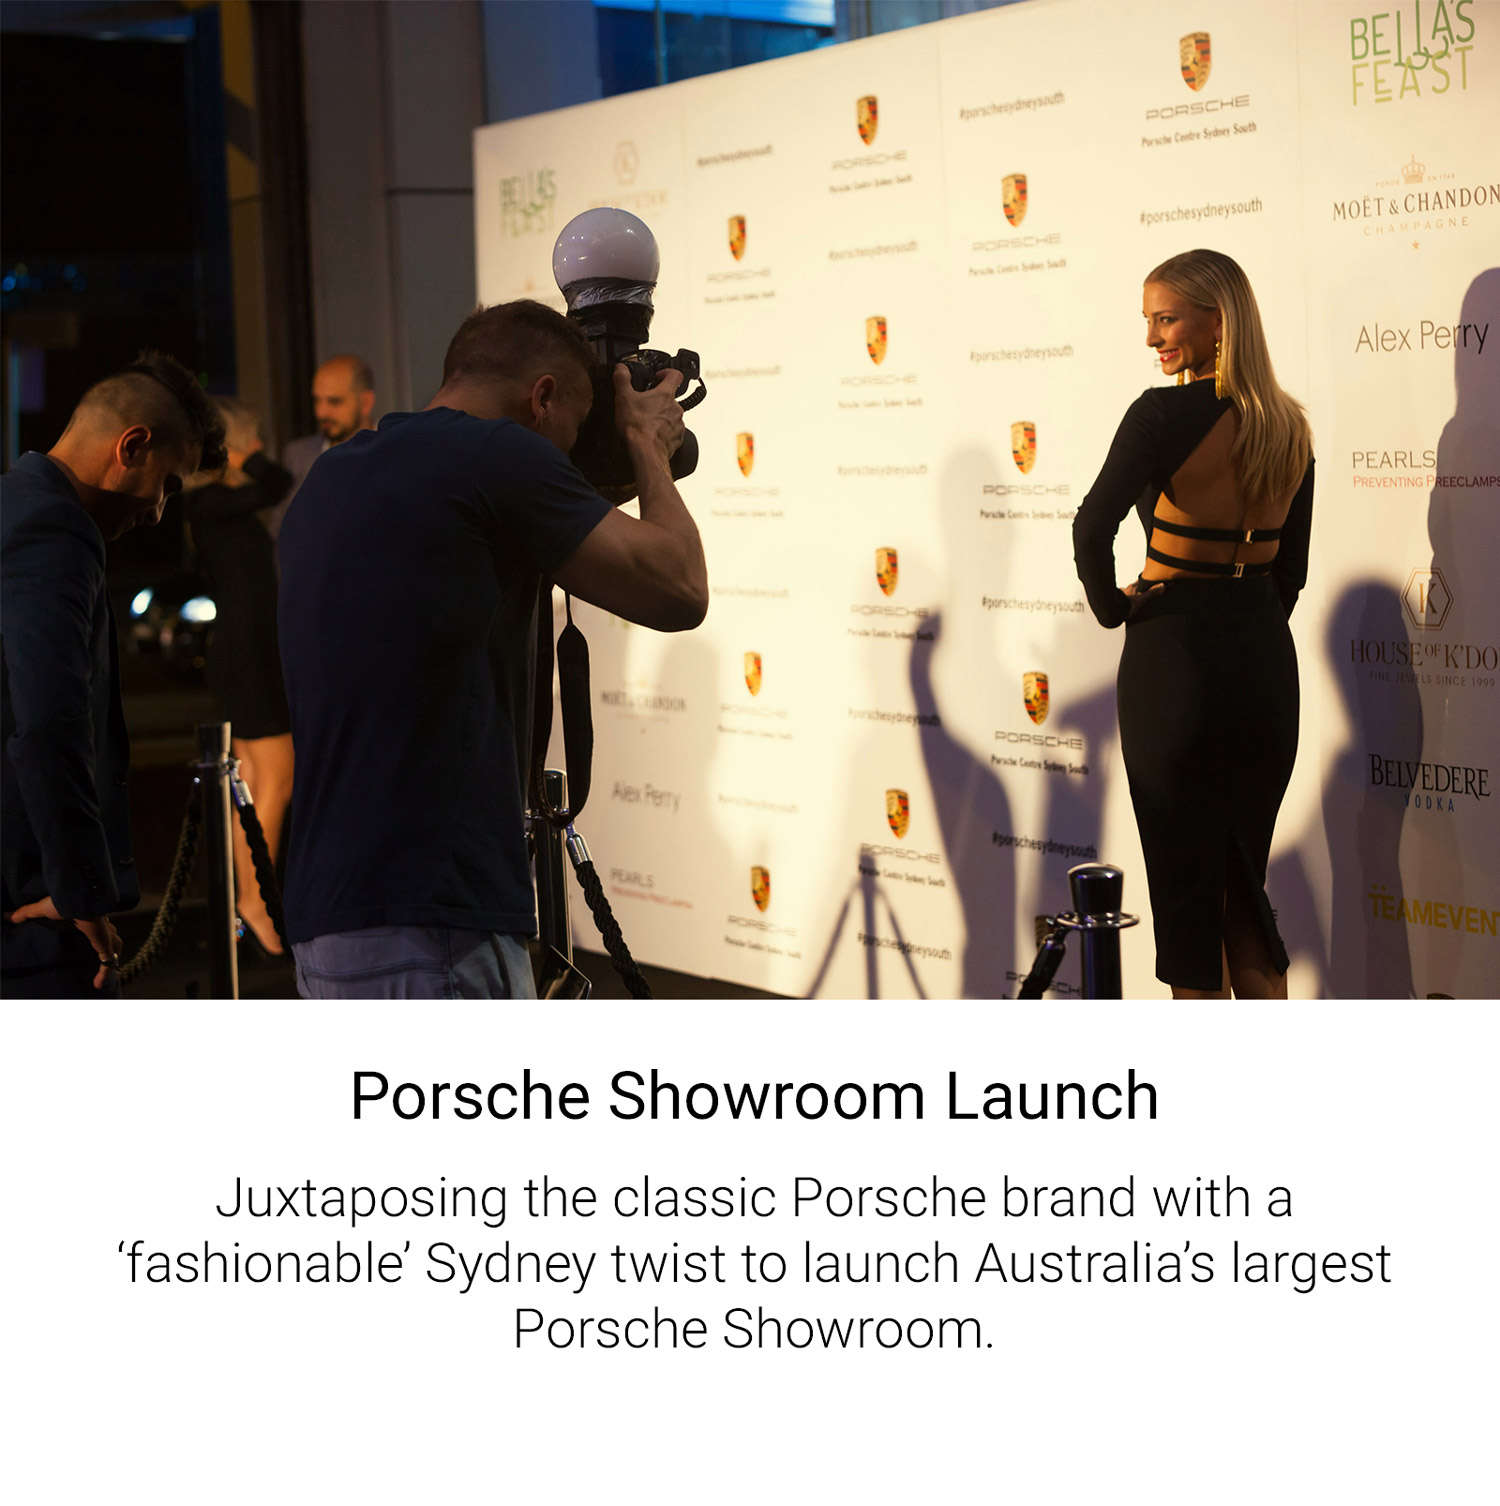 Porsche Showroom Launch